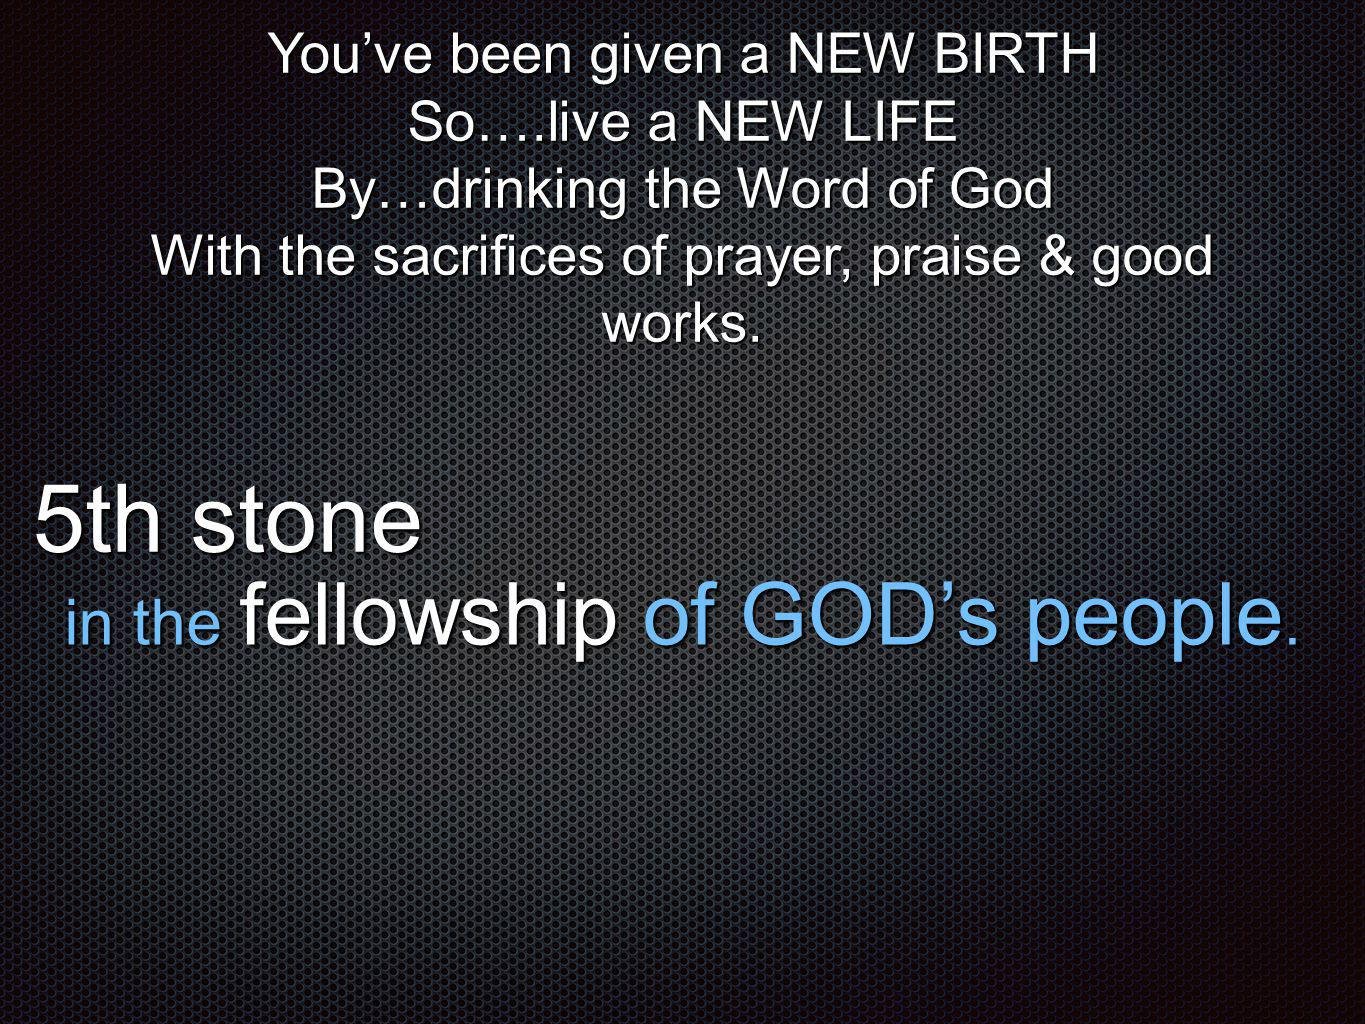 5th stone in the fellowship of GOD's people.